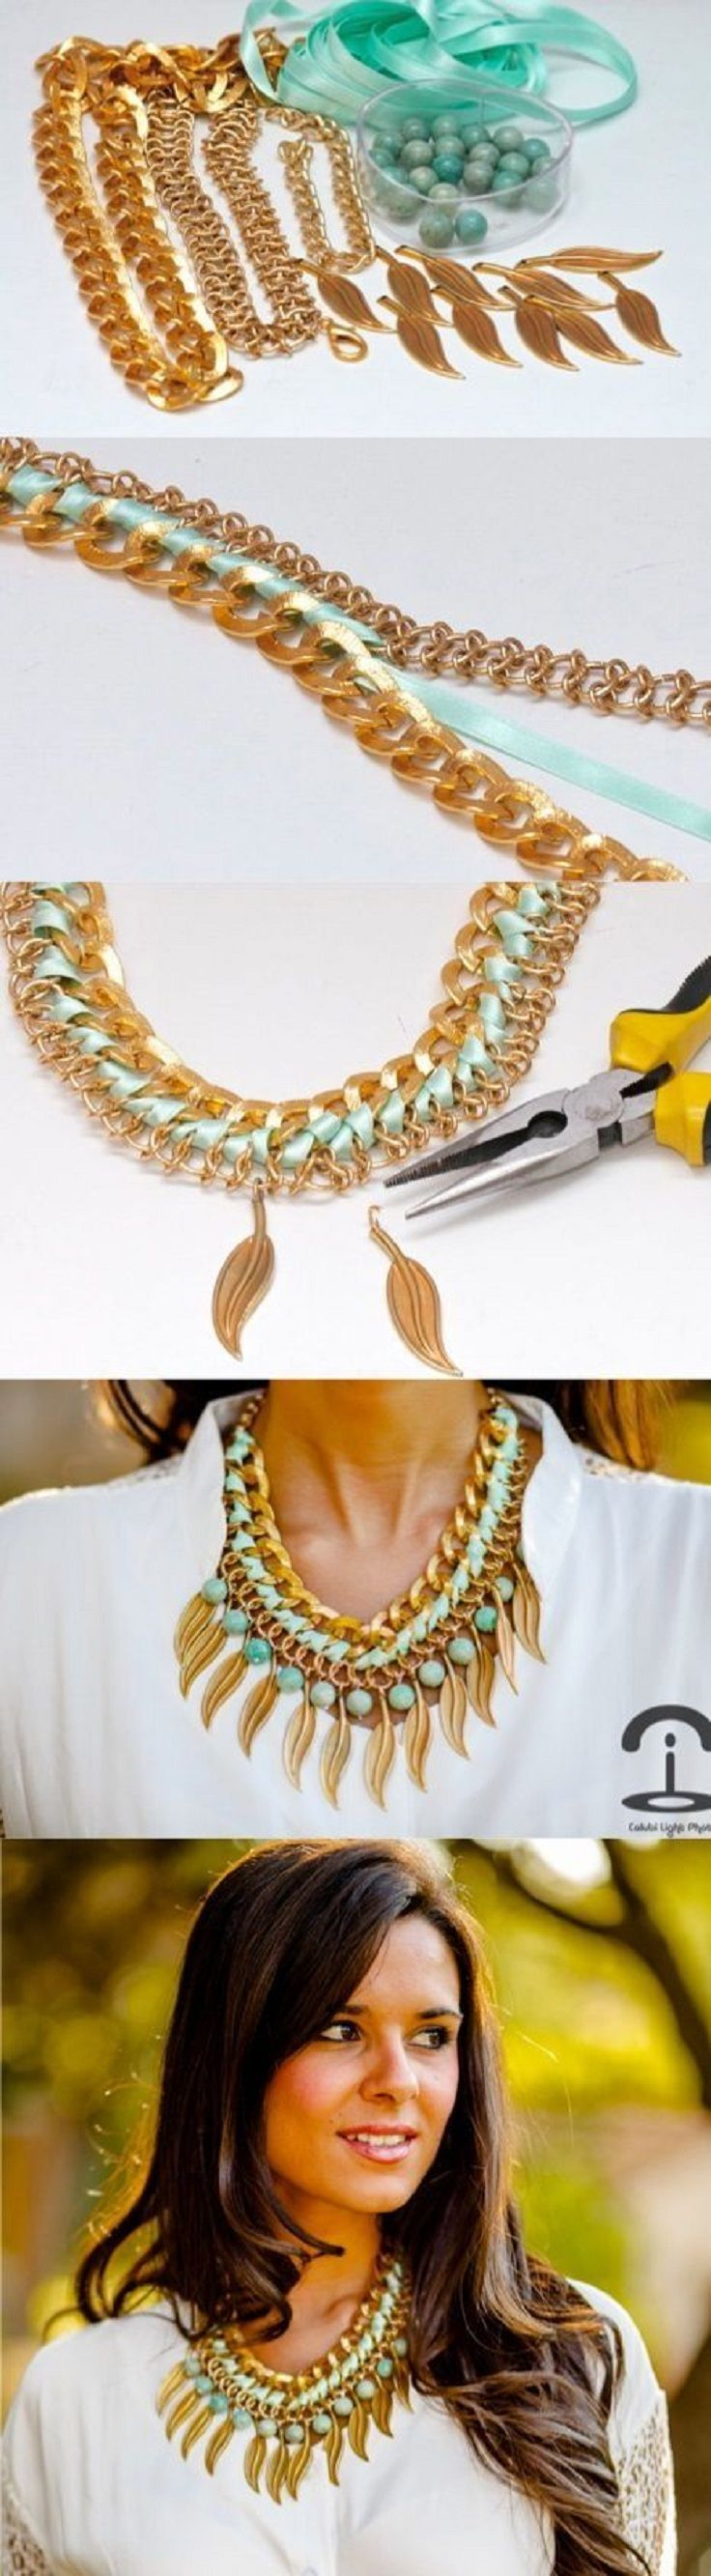 DIY Statement Necklace for Spring